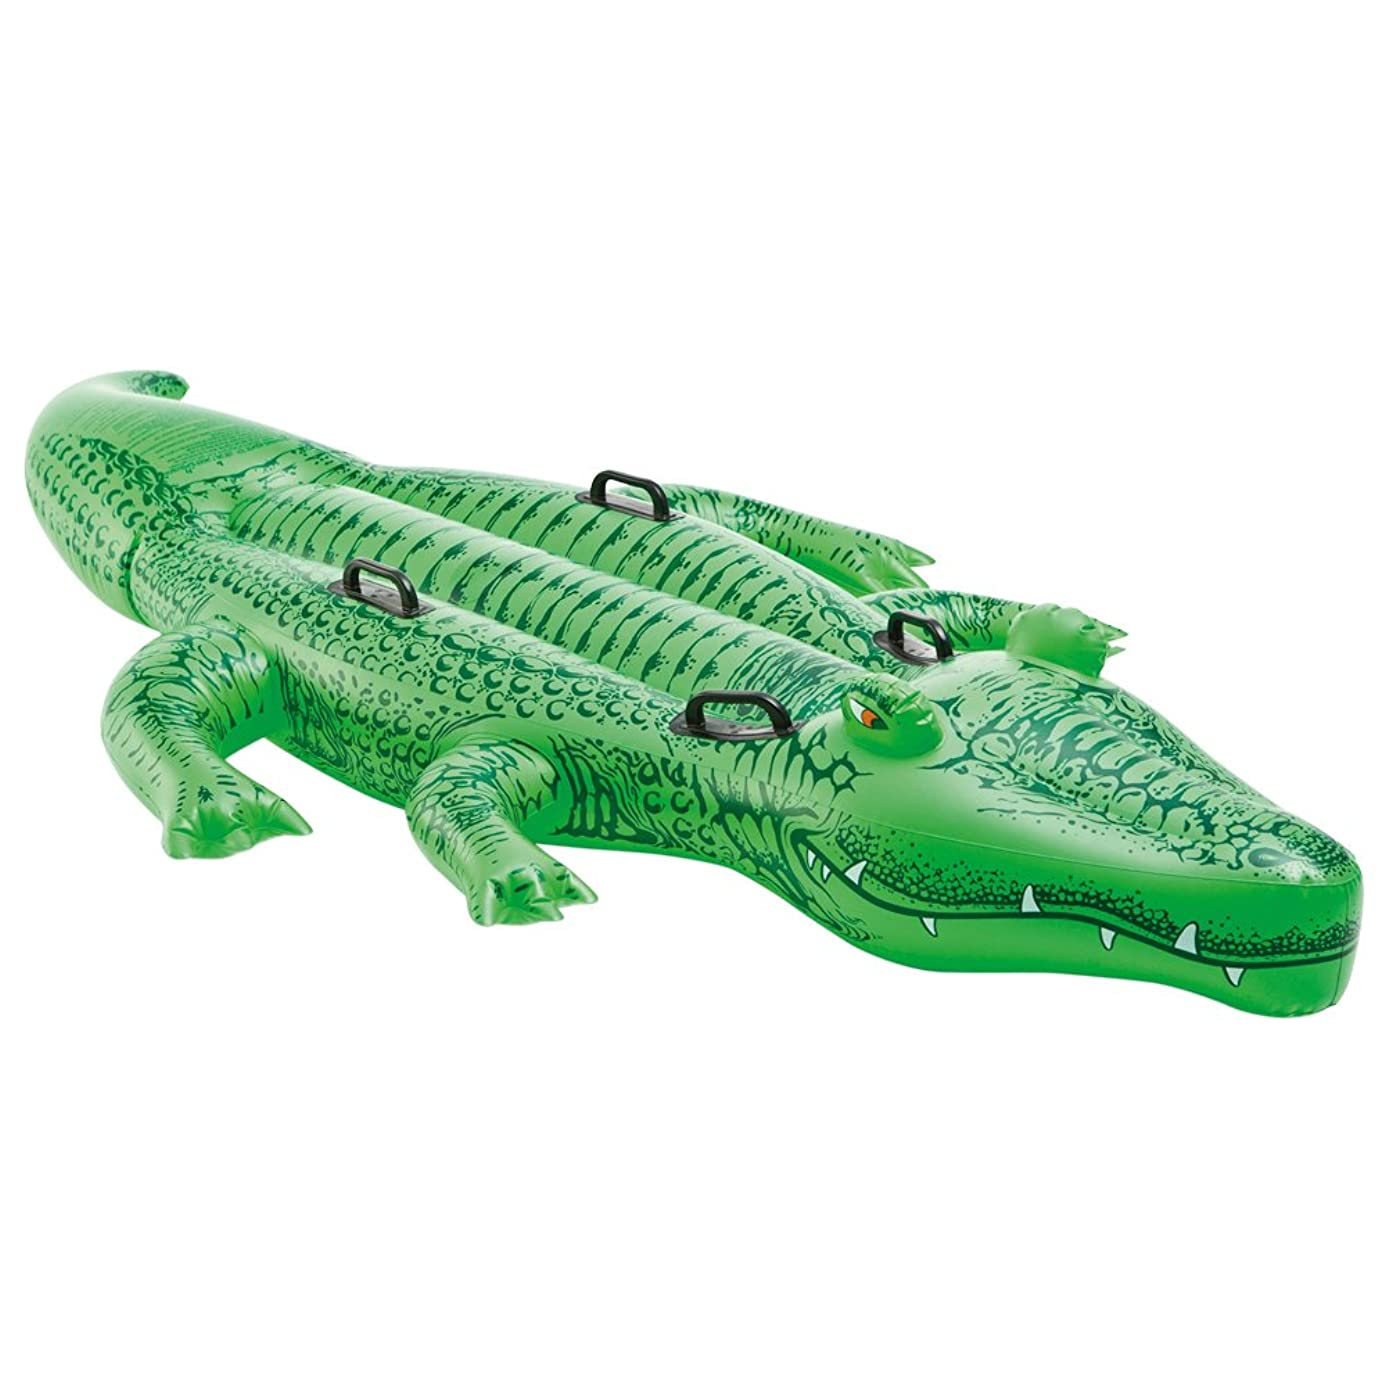 Intex Giant Gator Ride-On for Ages 3 and up